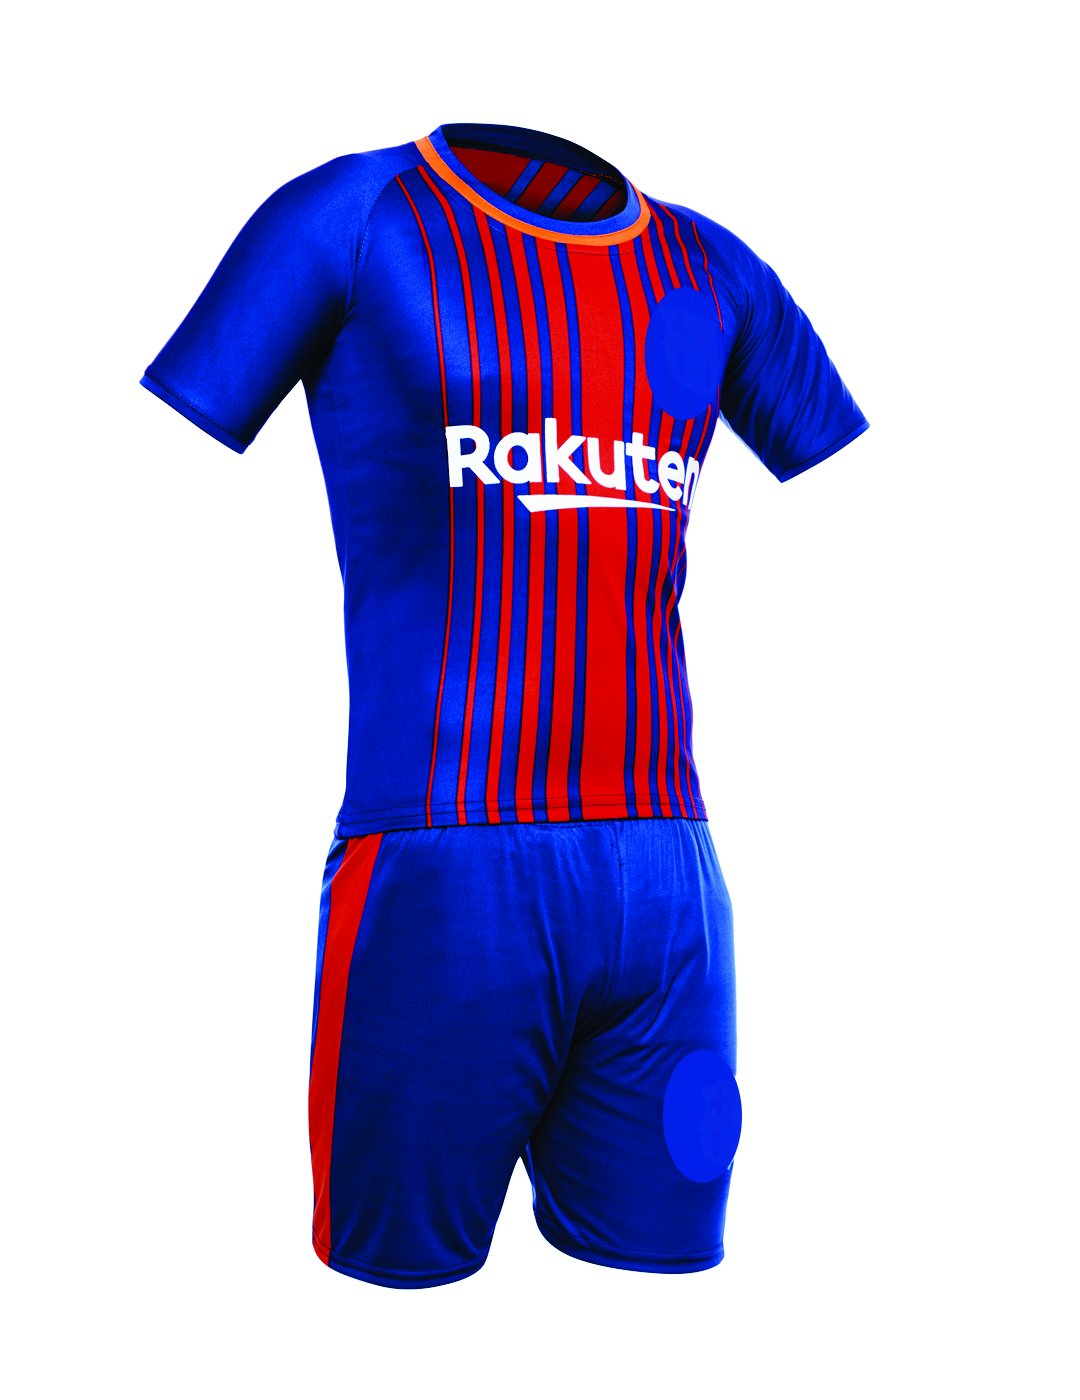 check out 55a8c 6ae7c Sportyway Kids Messi 10 FC Barcelona Football 2017/18 Jersey Set, 4-5 Years  - 28